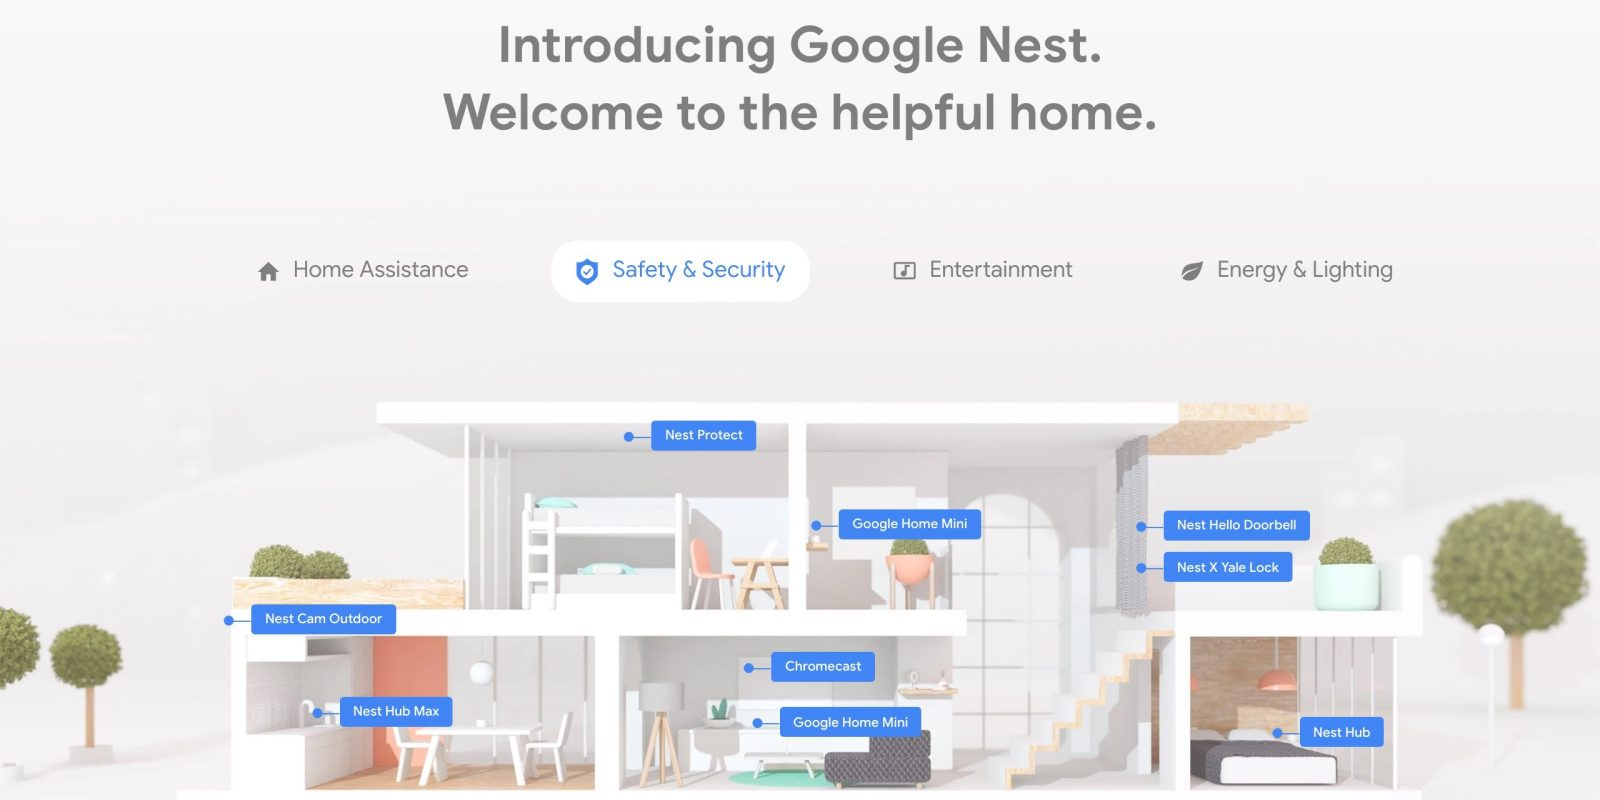 Google resets Nest Cam auto recording integration with Nest Protect, Secure